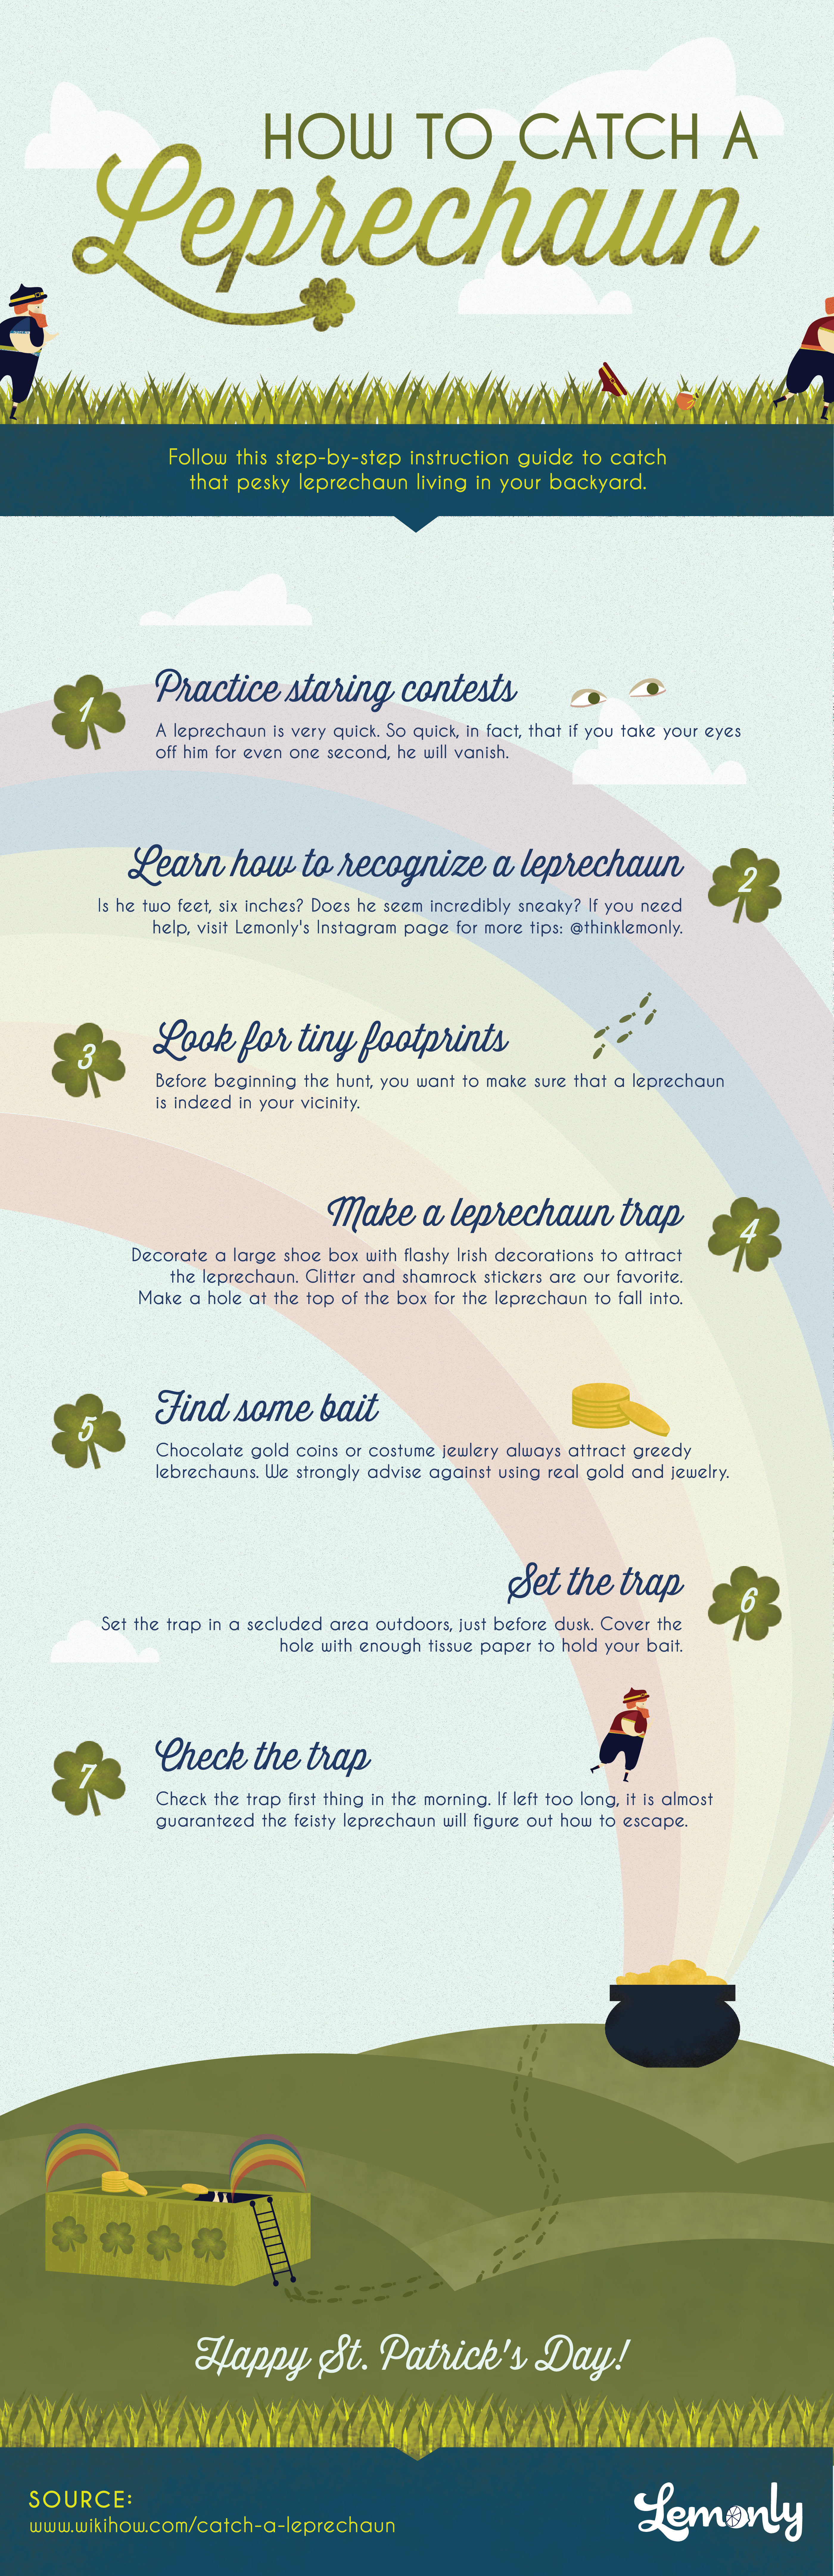 How to Catch a Leprechaun Infographic - Lemonly